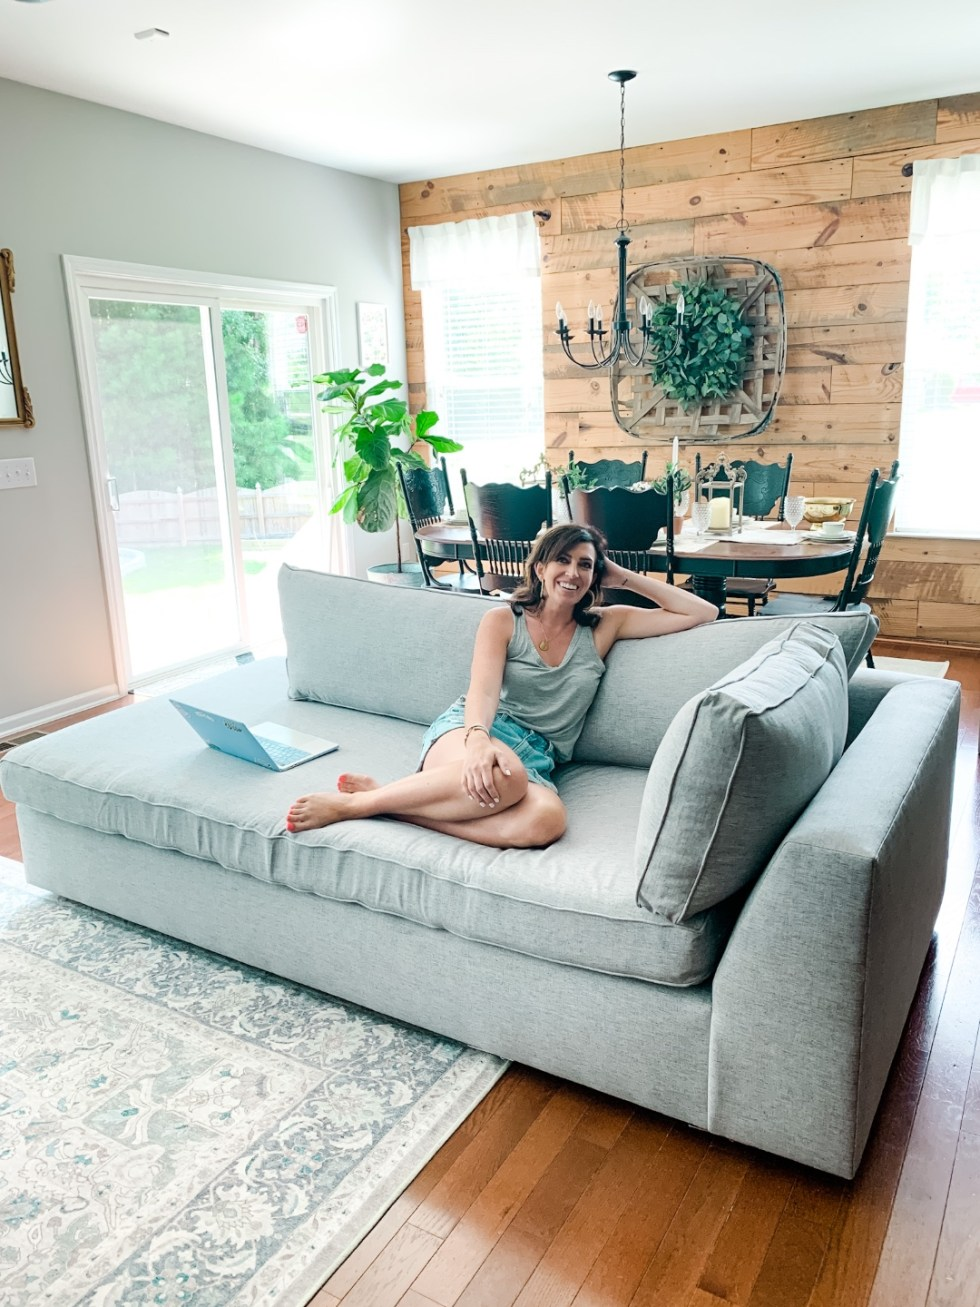 Inspiration Board: Living Room - I'm Fixin' To - @mbg0112 | Living Room Inspiration by popular N.C. life and style blog, I'm Fixin' To: image of a woman sitting next to her laptop on a West Elm Harris 2-Piece Terminal Chaise Sectional.